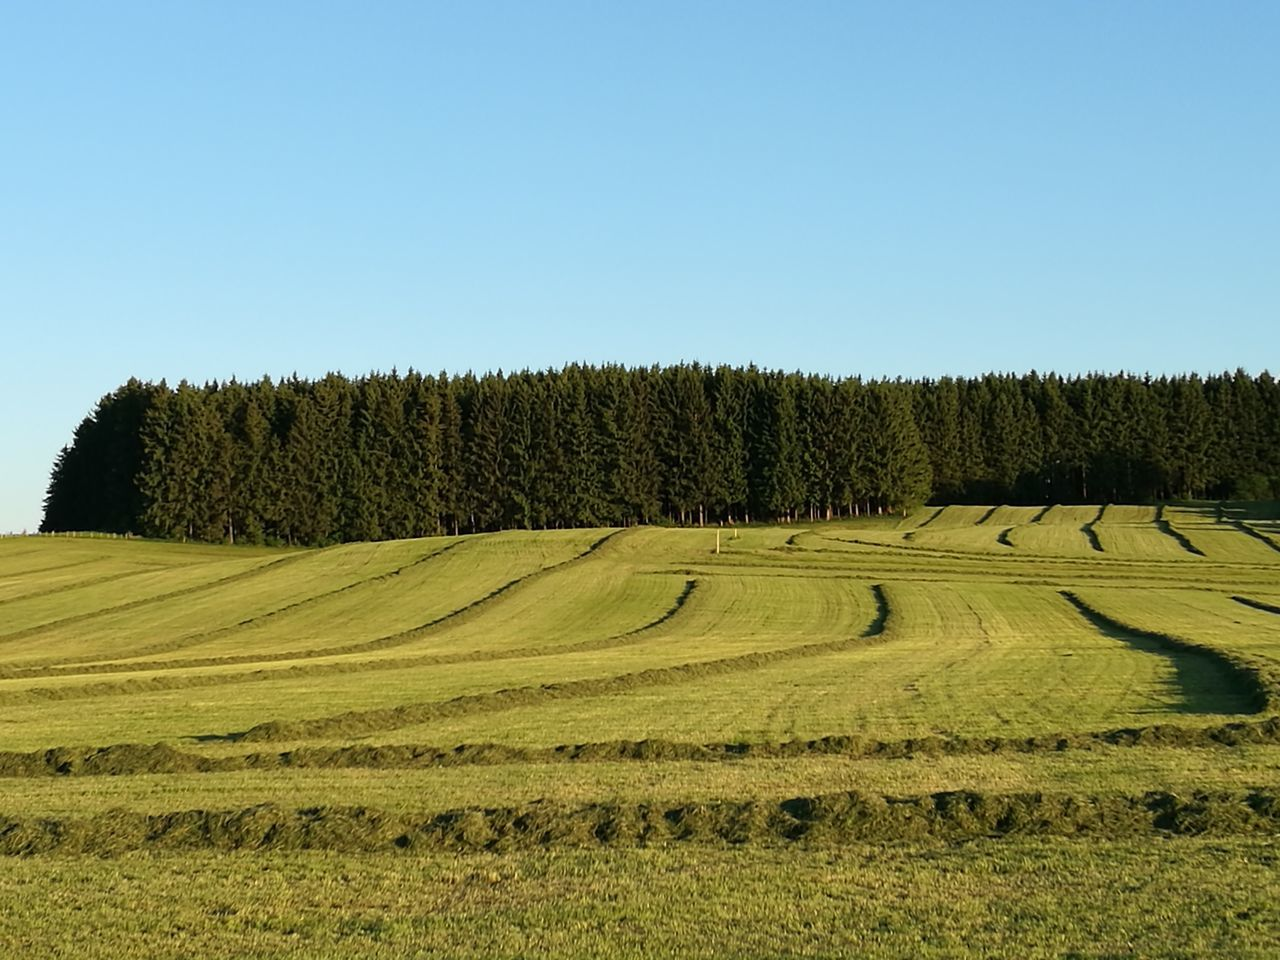 clear sky, field, agriculture, landscape, growth, tree, tranquil scene, nature, no people, tranquility, beauty in nature, day, scenics, outdoors, grass, hay bale, sky